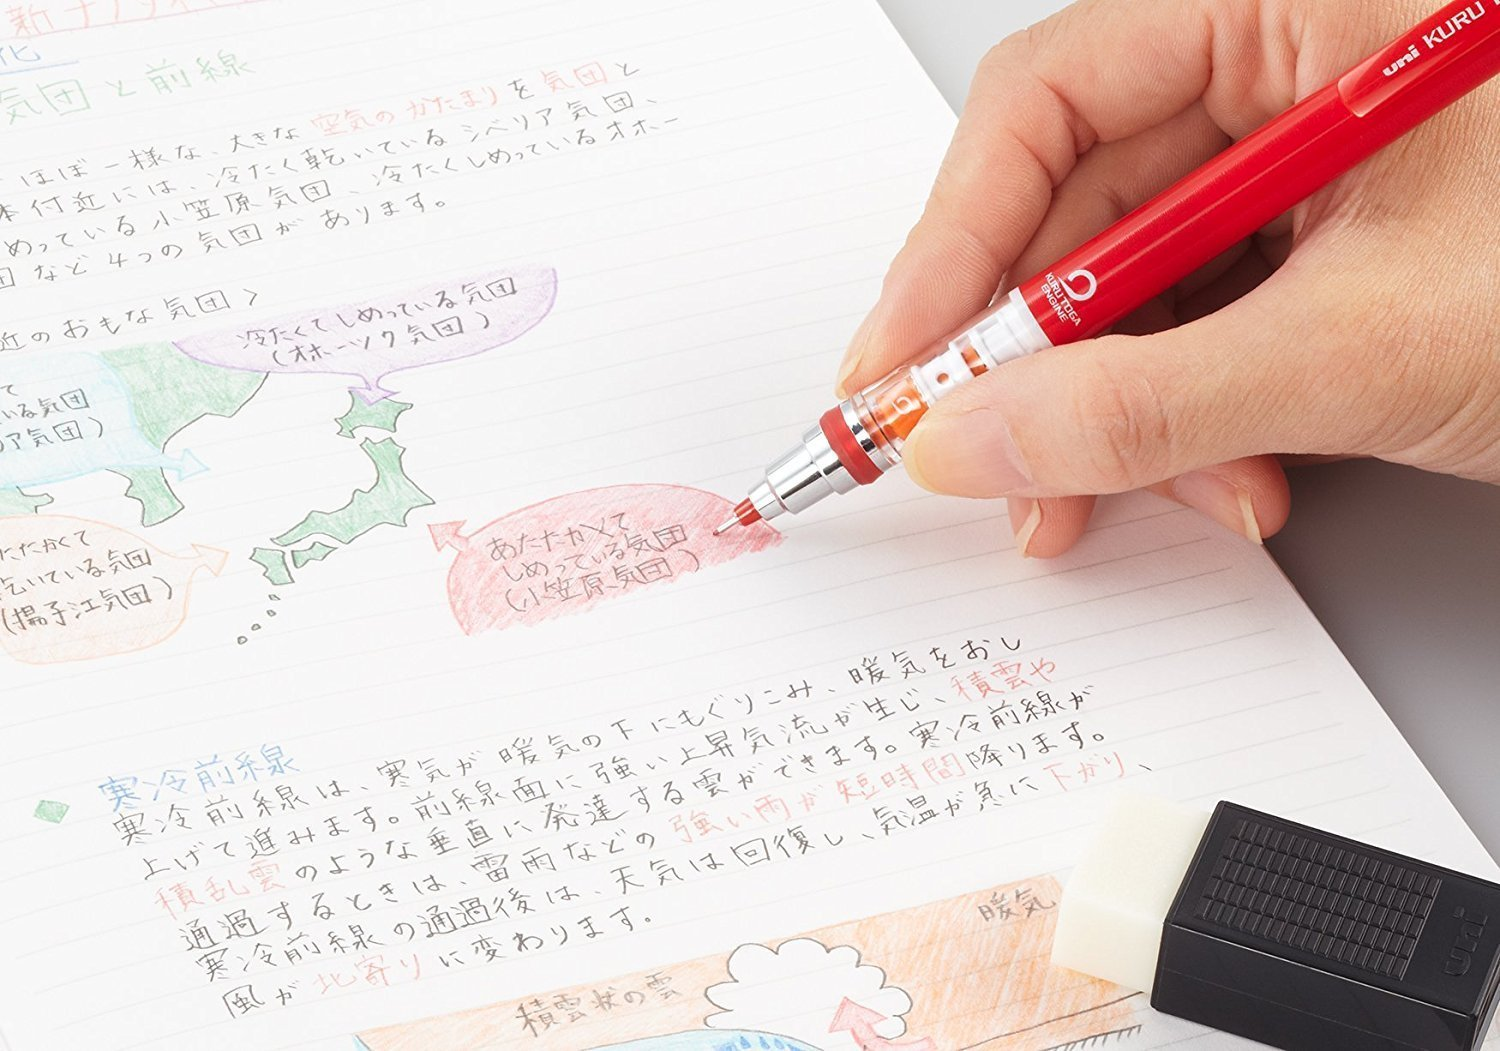 Uni NanoDia Color Mechanical Pencil Leads, 0.5mm, 7 Colors, Total 140 Leads, Sticky Notes Value Set by Stationery JP (Image #6)